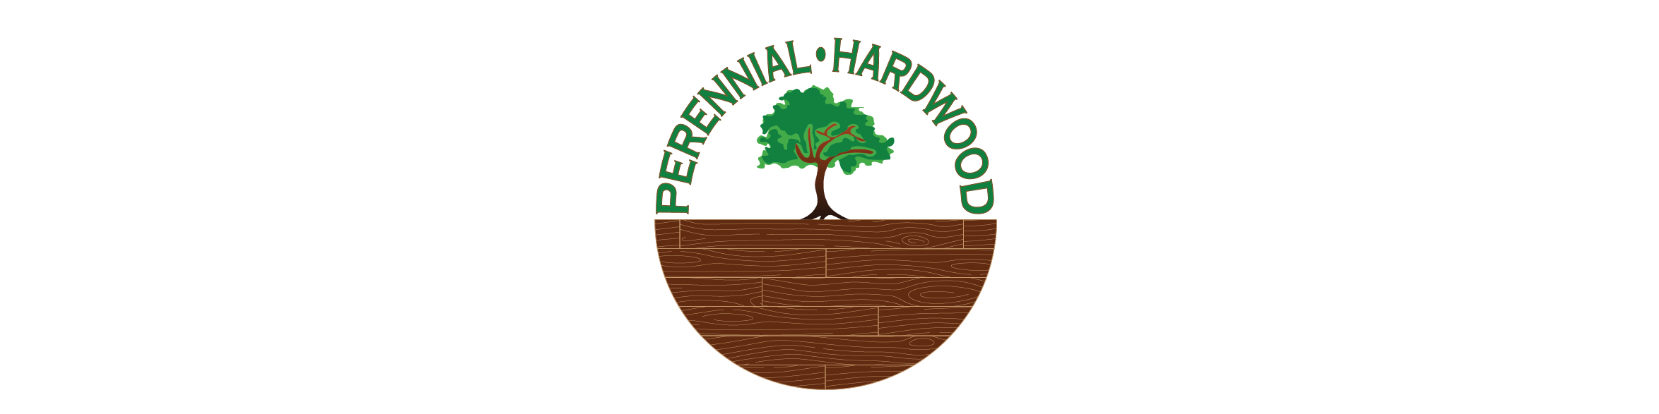 Perennial Hardwood and Flooring